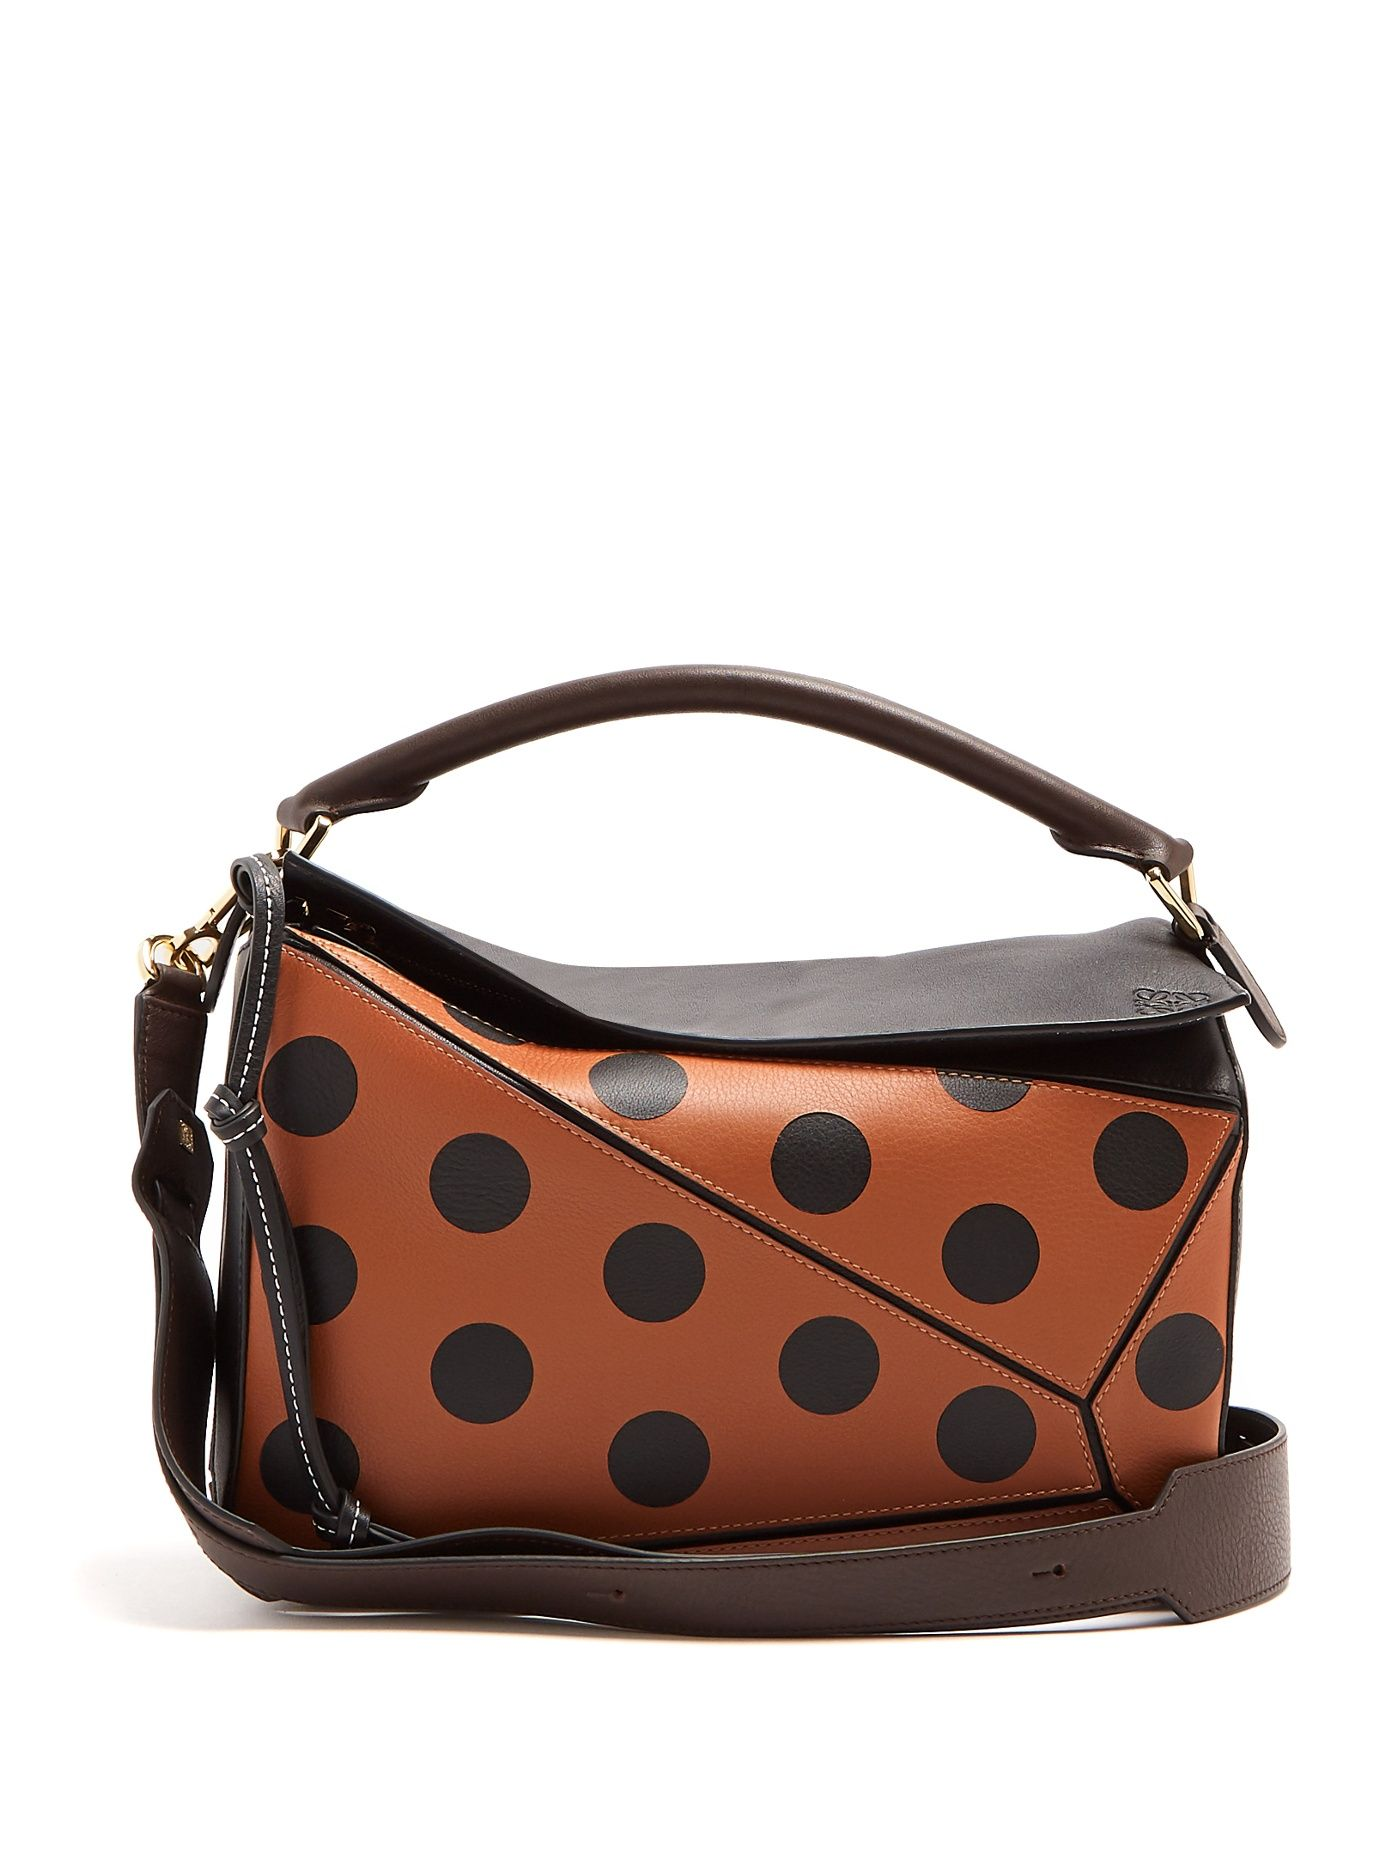 a05c4c75be74 Click here to buy Loewe Puzzle polka-dot leather bag at MATCHESFASHION.COM